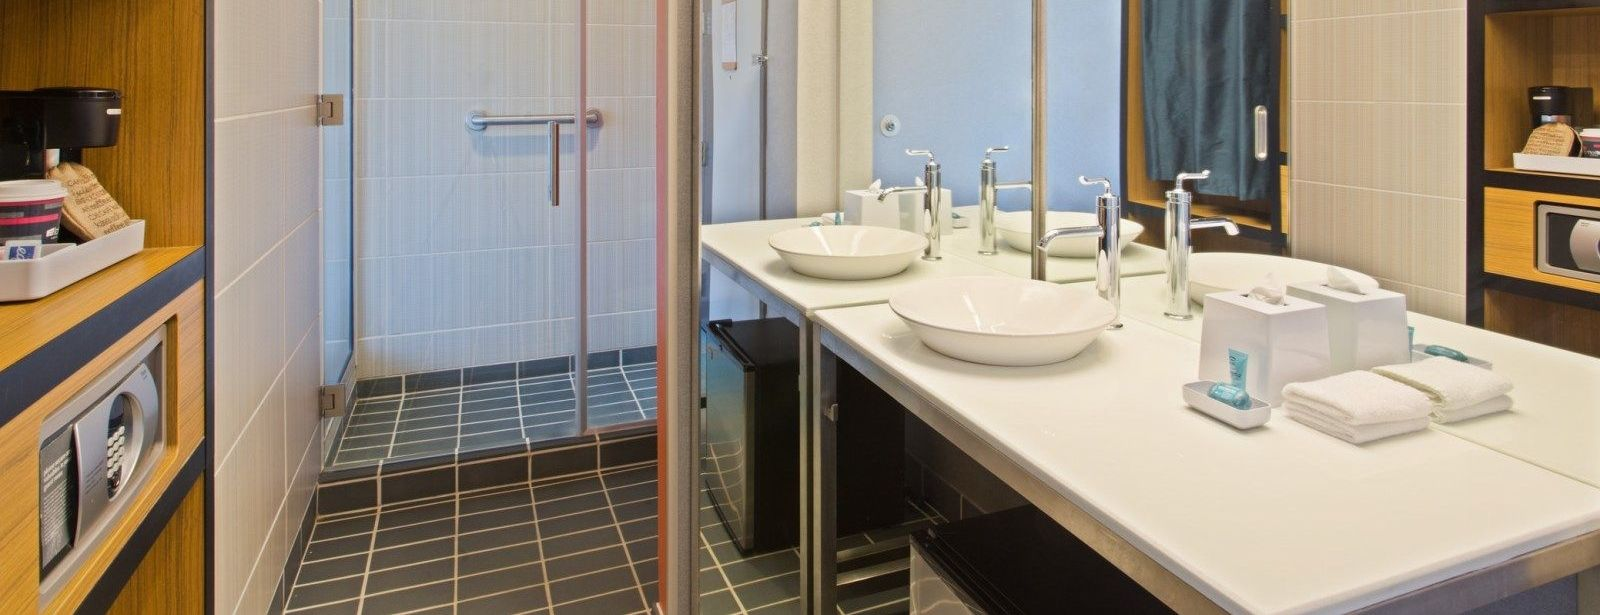 Birmingham Accommodations - Accessible Guest Bath